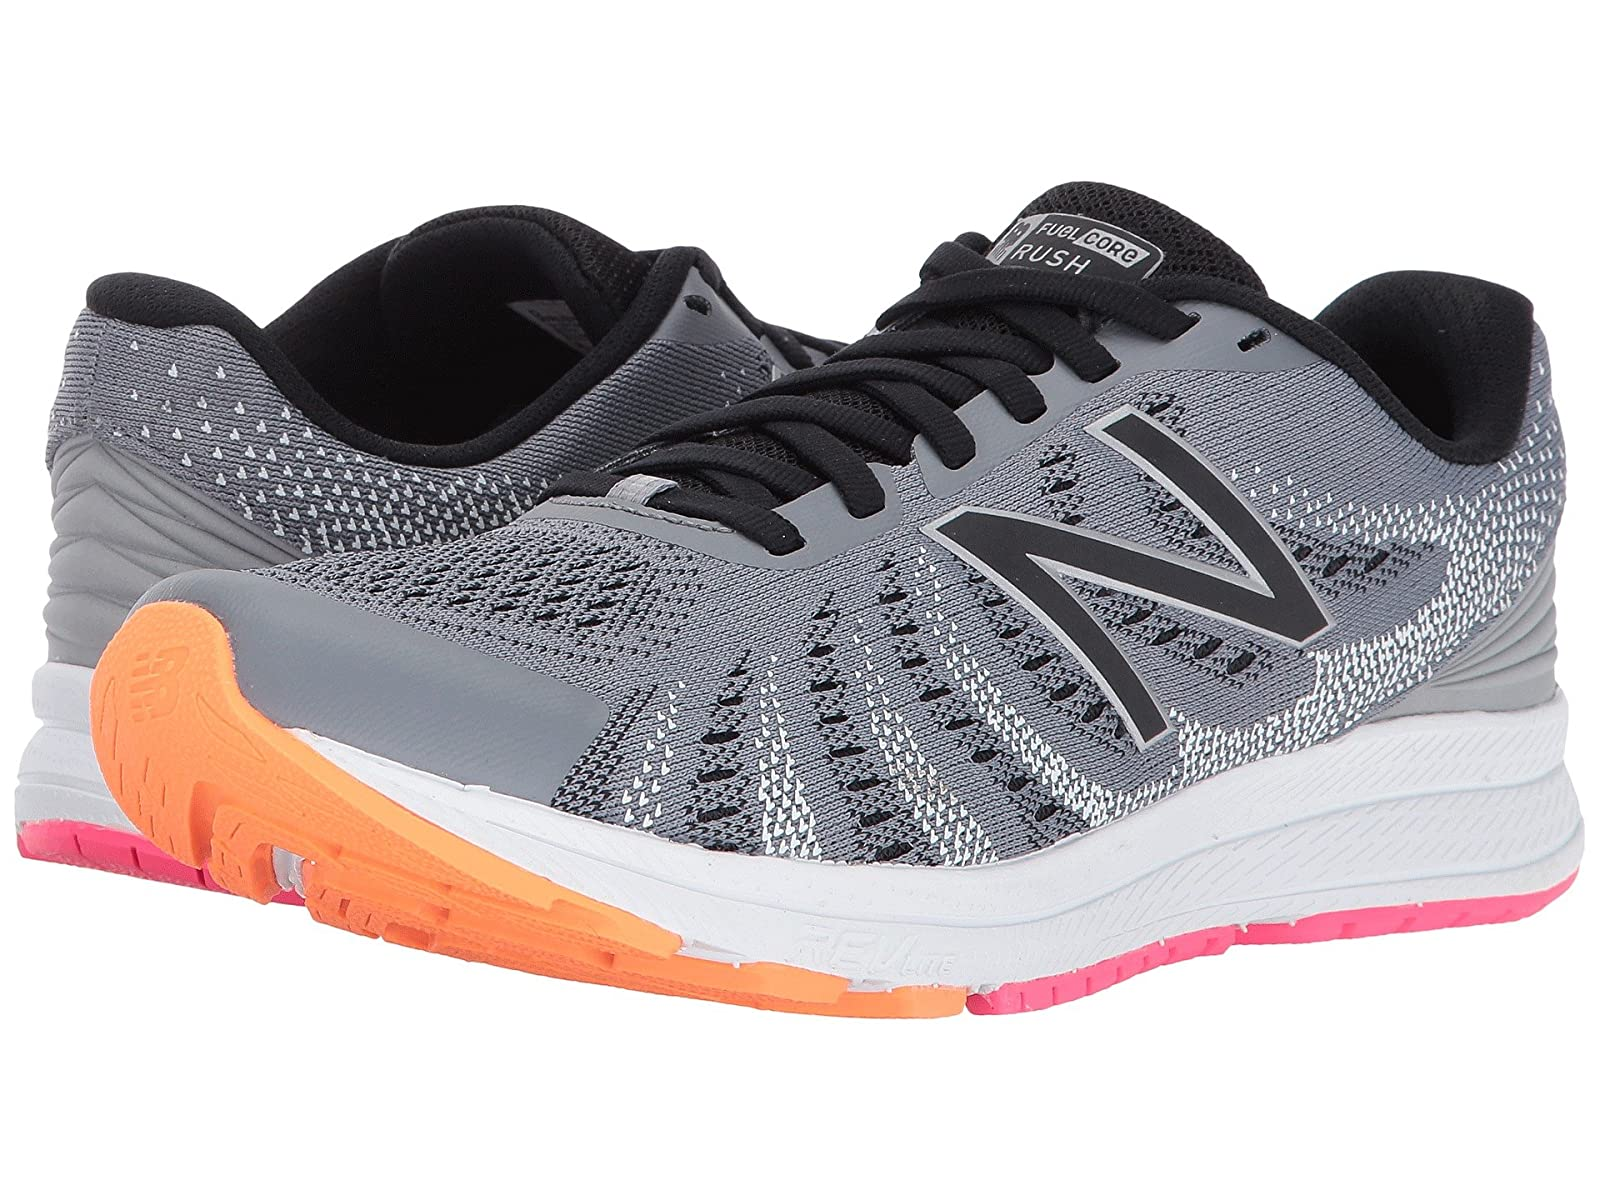 New Balance Rush V3Atmospheric grades have affordable shoes